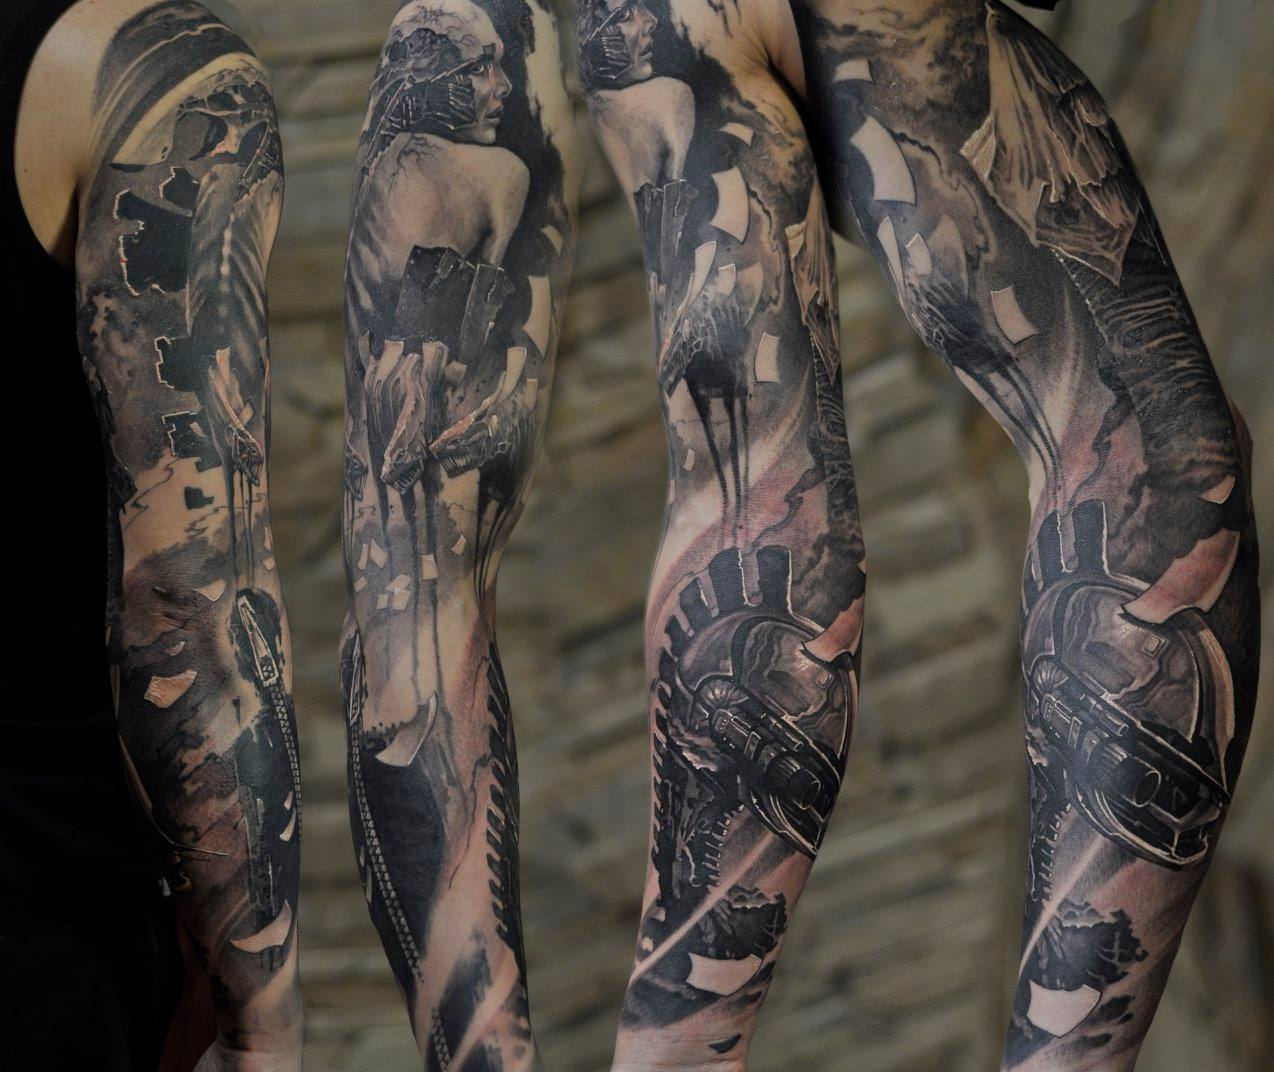 Abstract Full Sleeve Tattoo With Mechanical Elements By